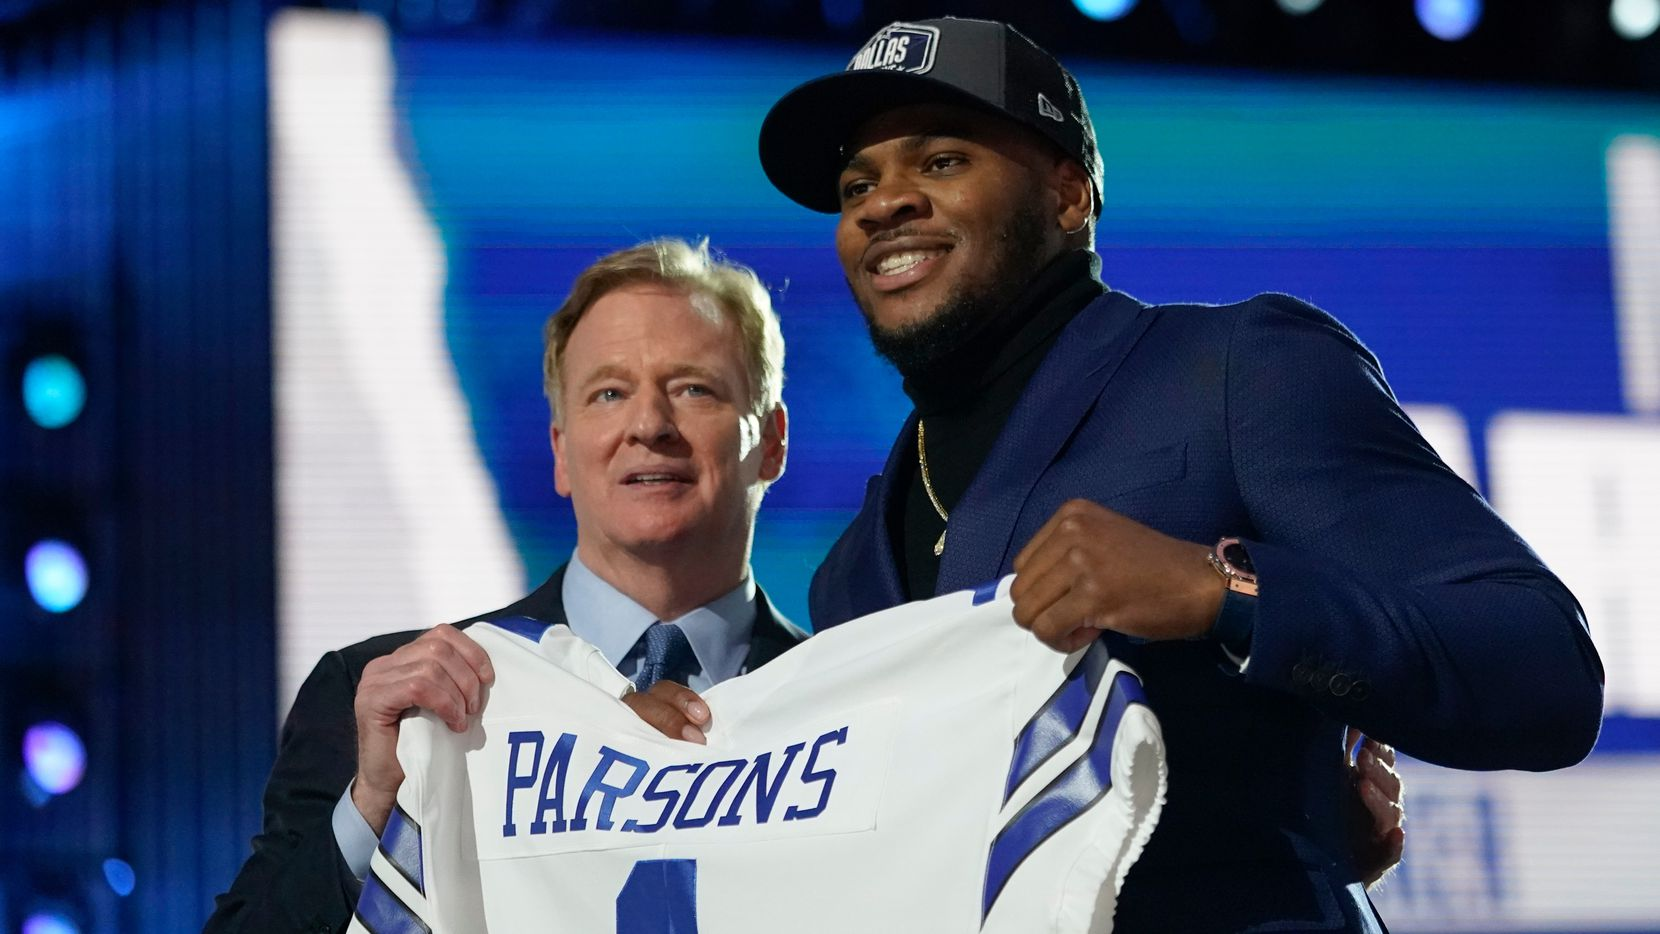 Penn State linebacker Micah Parsons, right, holds a team jersey with NFL Commissioner Roger Goodell after the was chosen by the Dallas Cowboys with the 12th pick in the NFL football draft Thursday, April 29, 2021, in Cleveland.